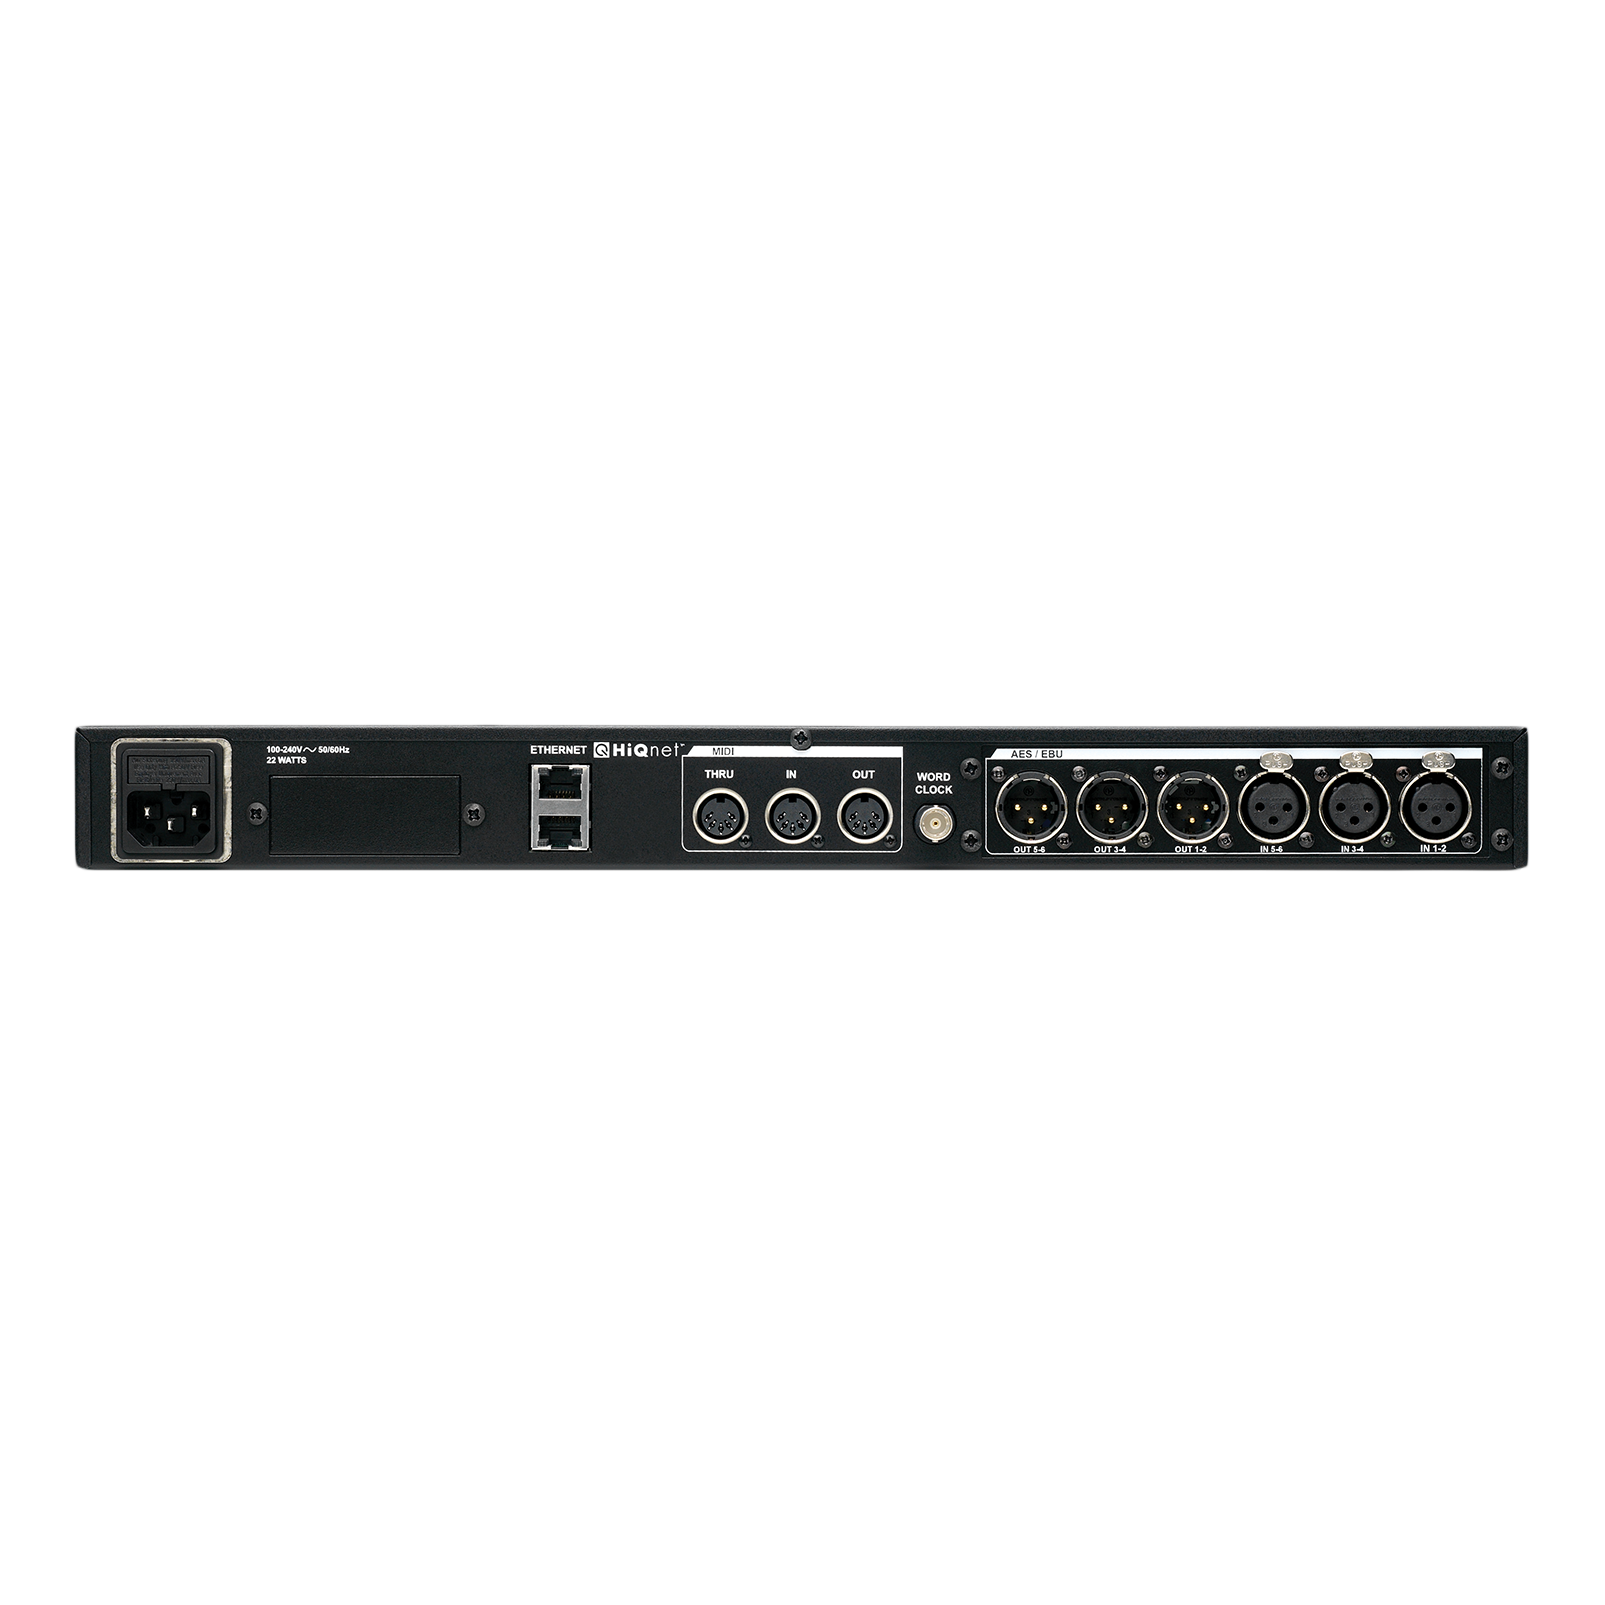 PCM96 Surround (digital) - Nickel - Parallel Stereo and Surround Reverb/Effects Processor w/ Digital I/O - Back